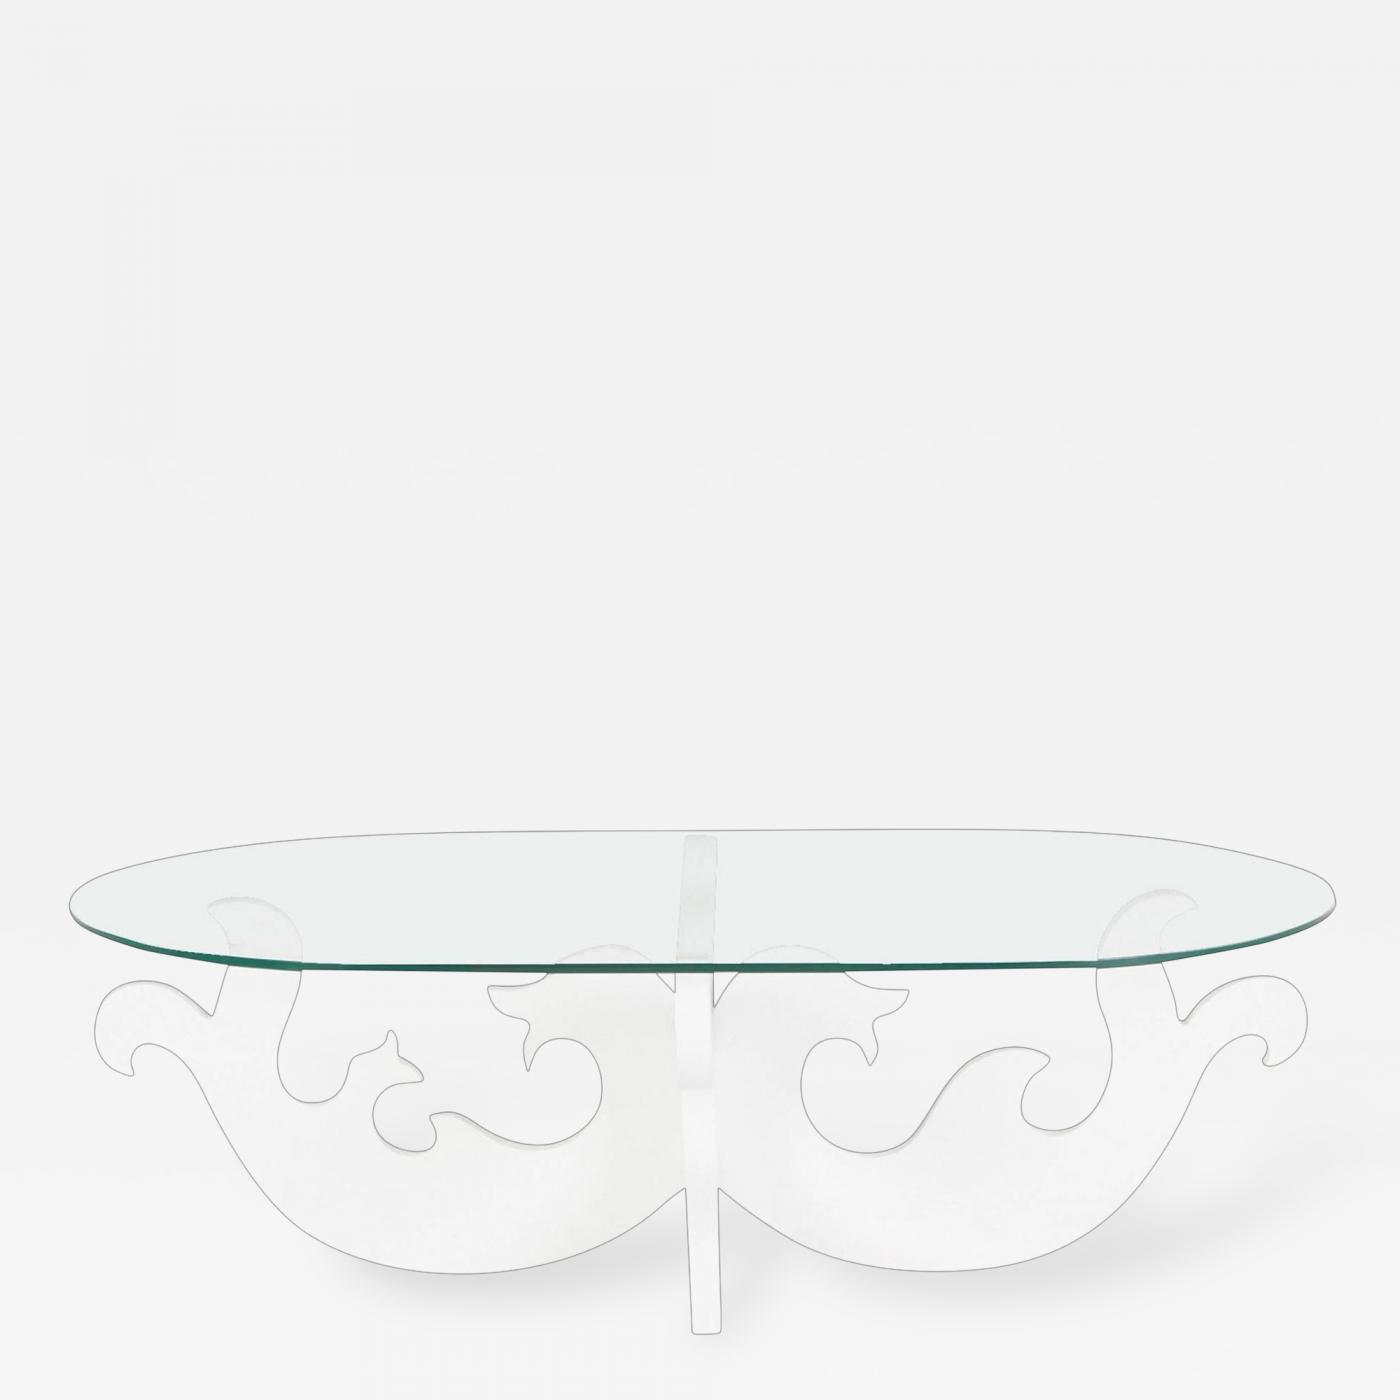 Eva zeisel coffee table by eva zeisel listings furniture tables center tables eva zeisel coffee geotapseo Image collections